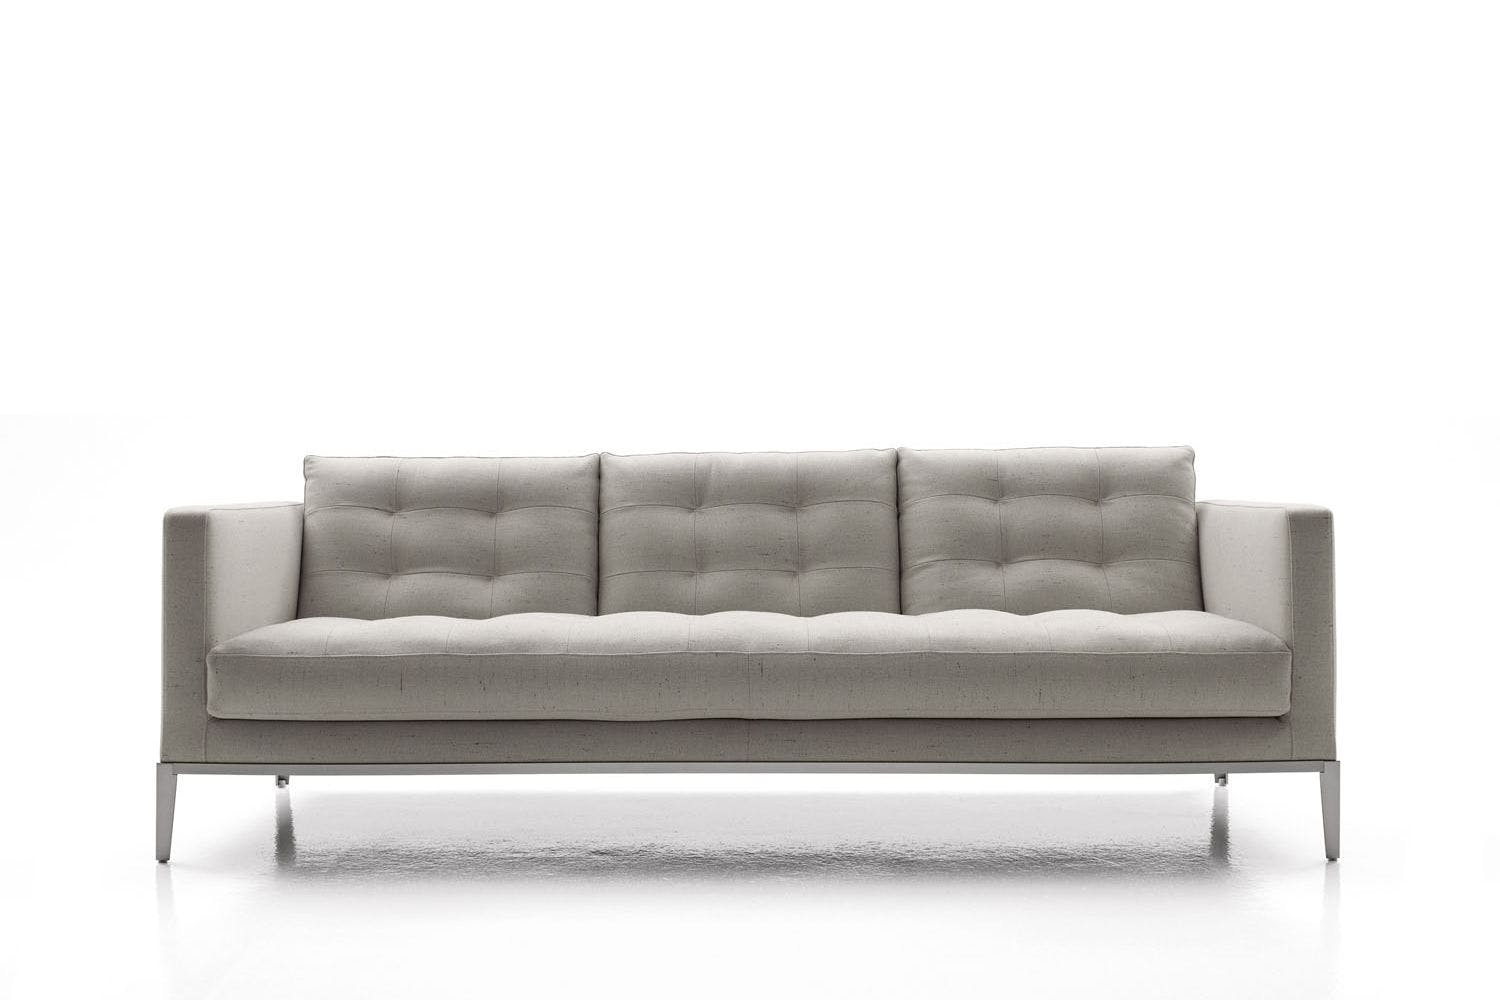 ac lounge sofa by antonio citterio for b b italia project space furniture. Black Bedroom Furniture Sets. Home Design Ideas